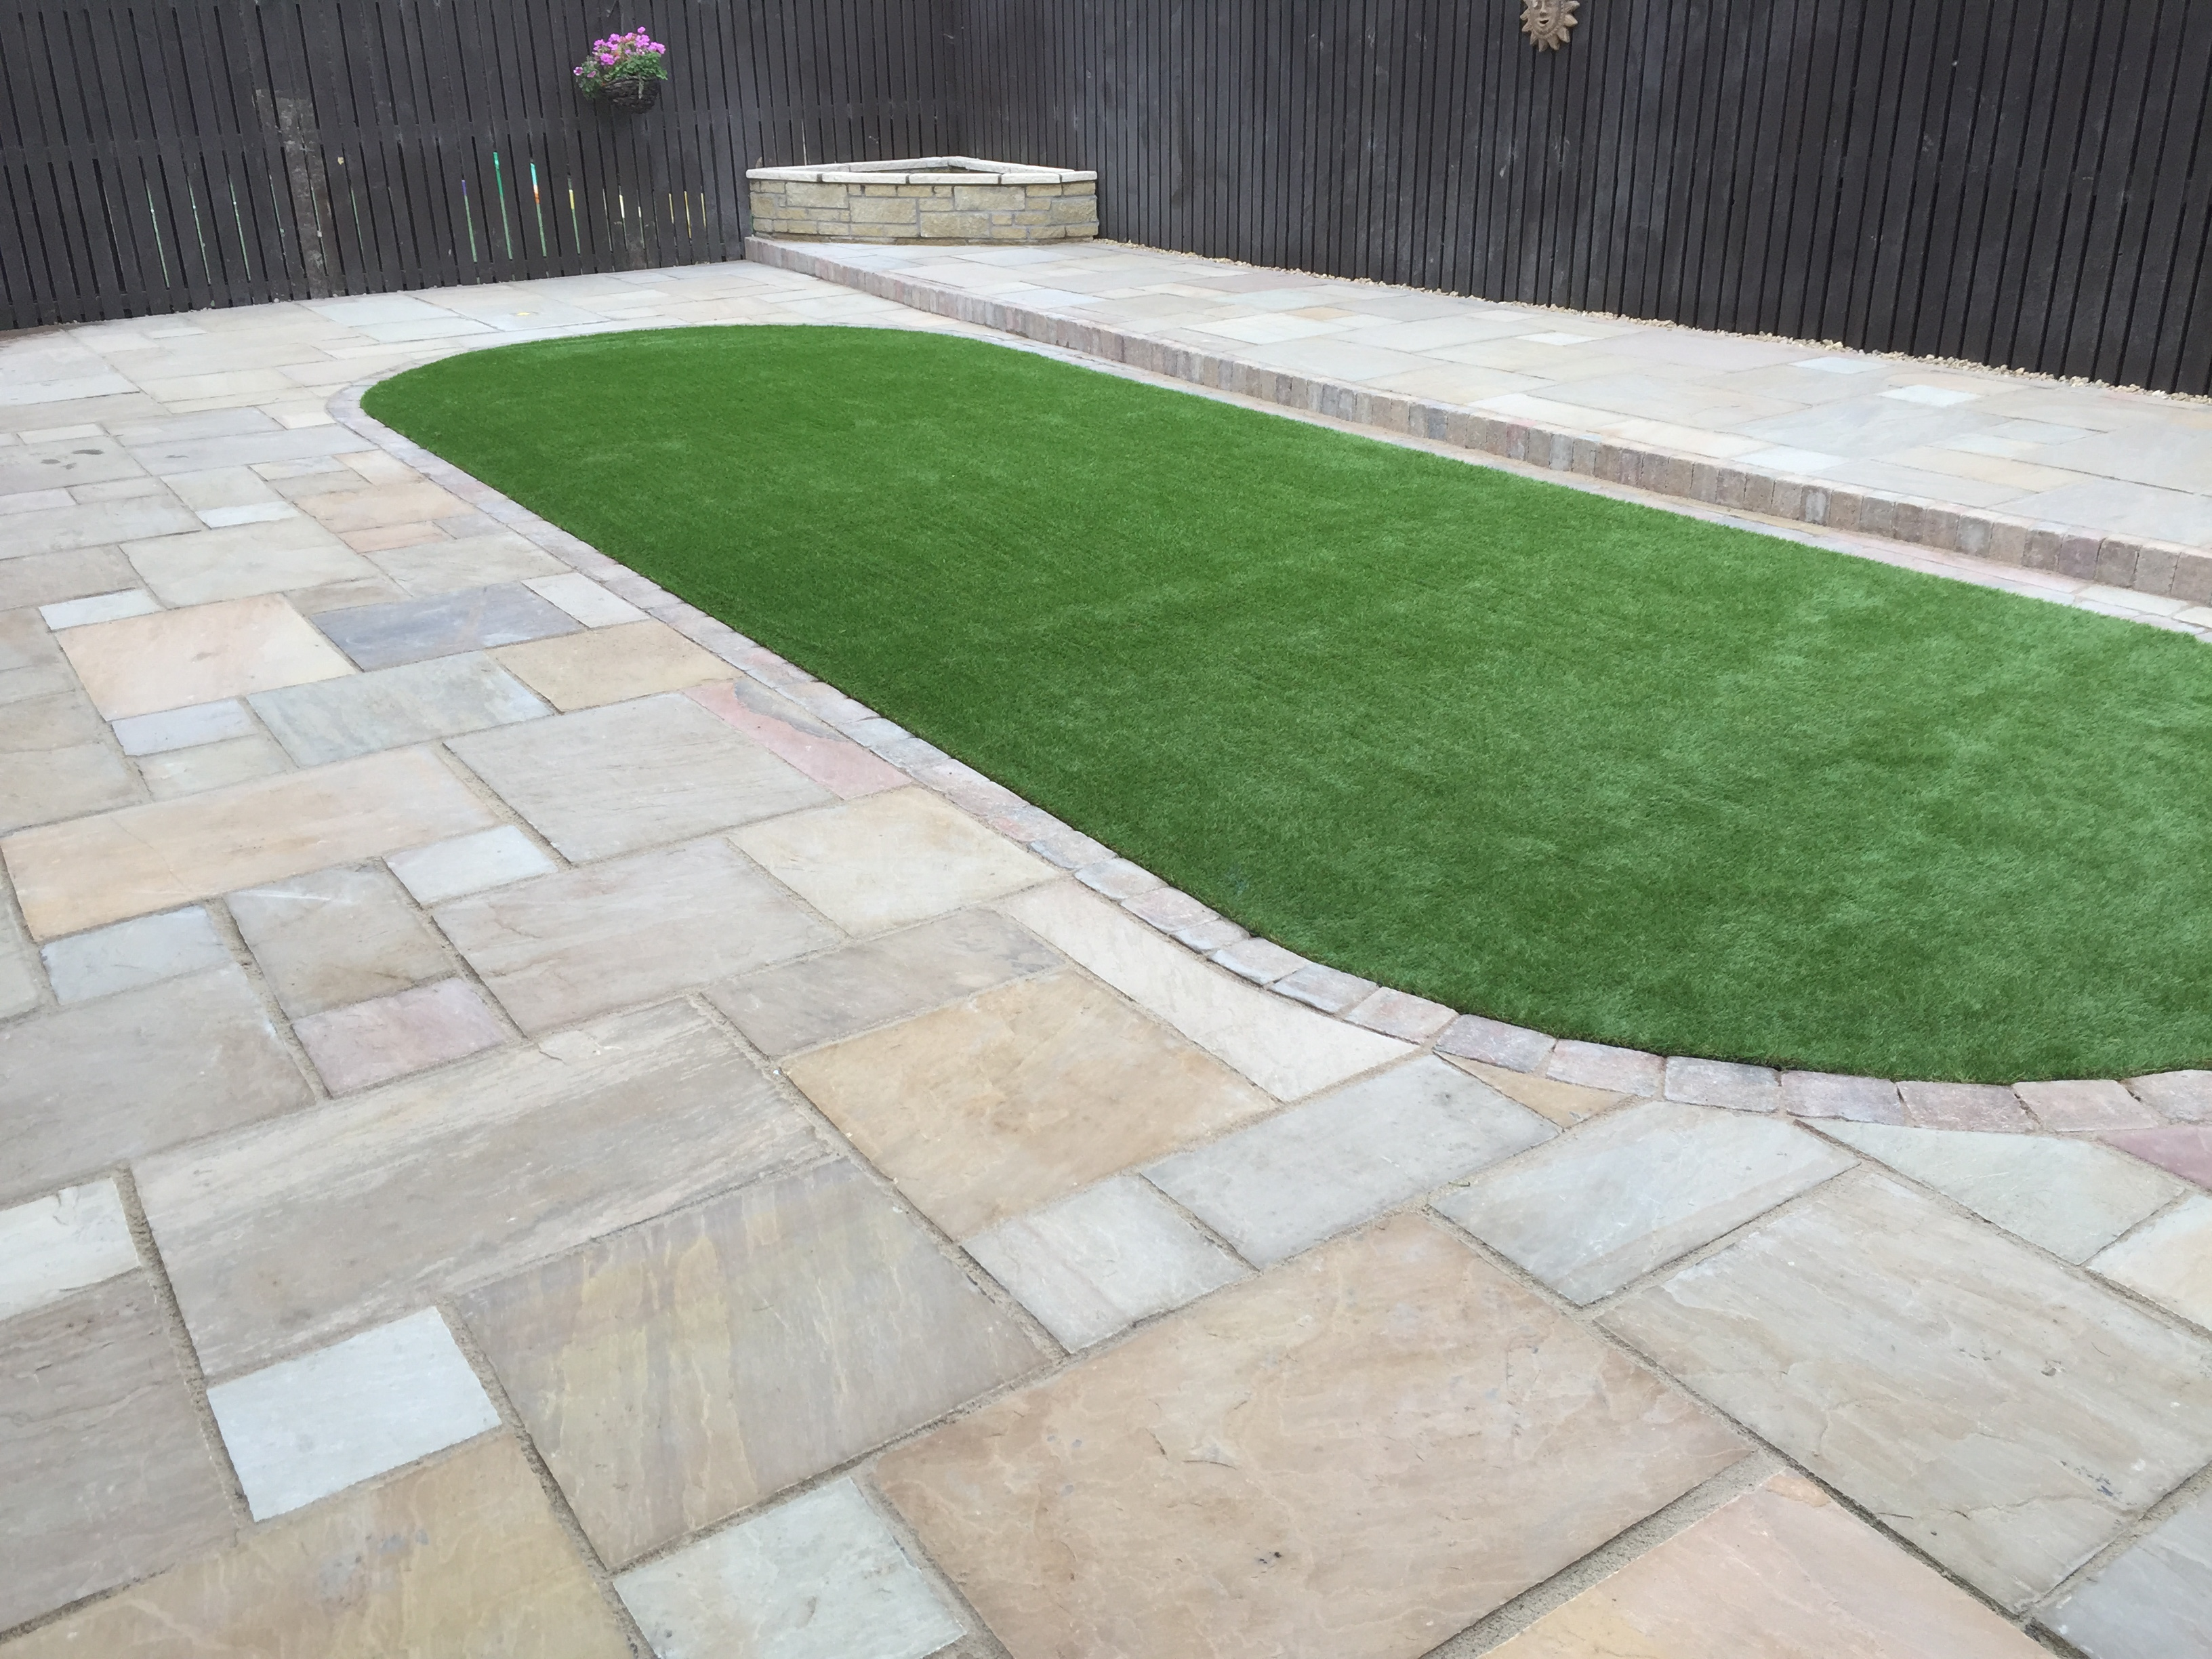 Landscaping services and garden design